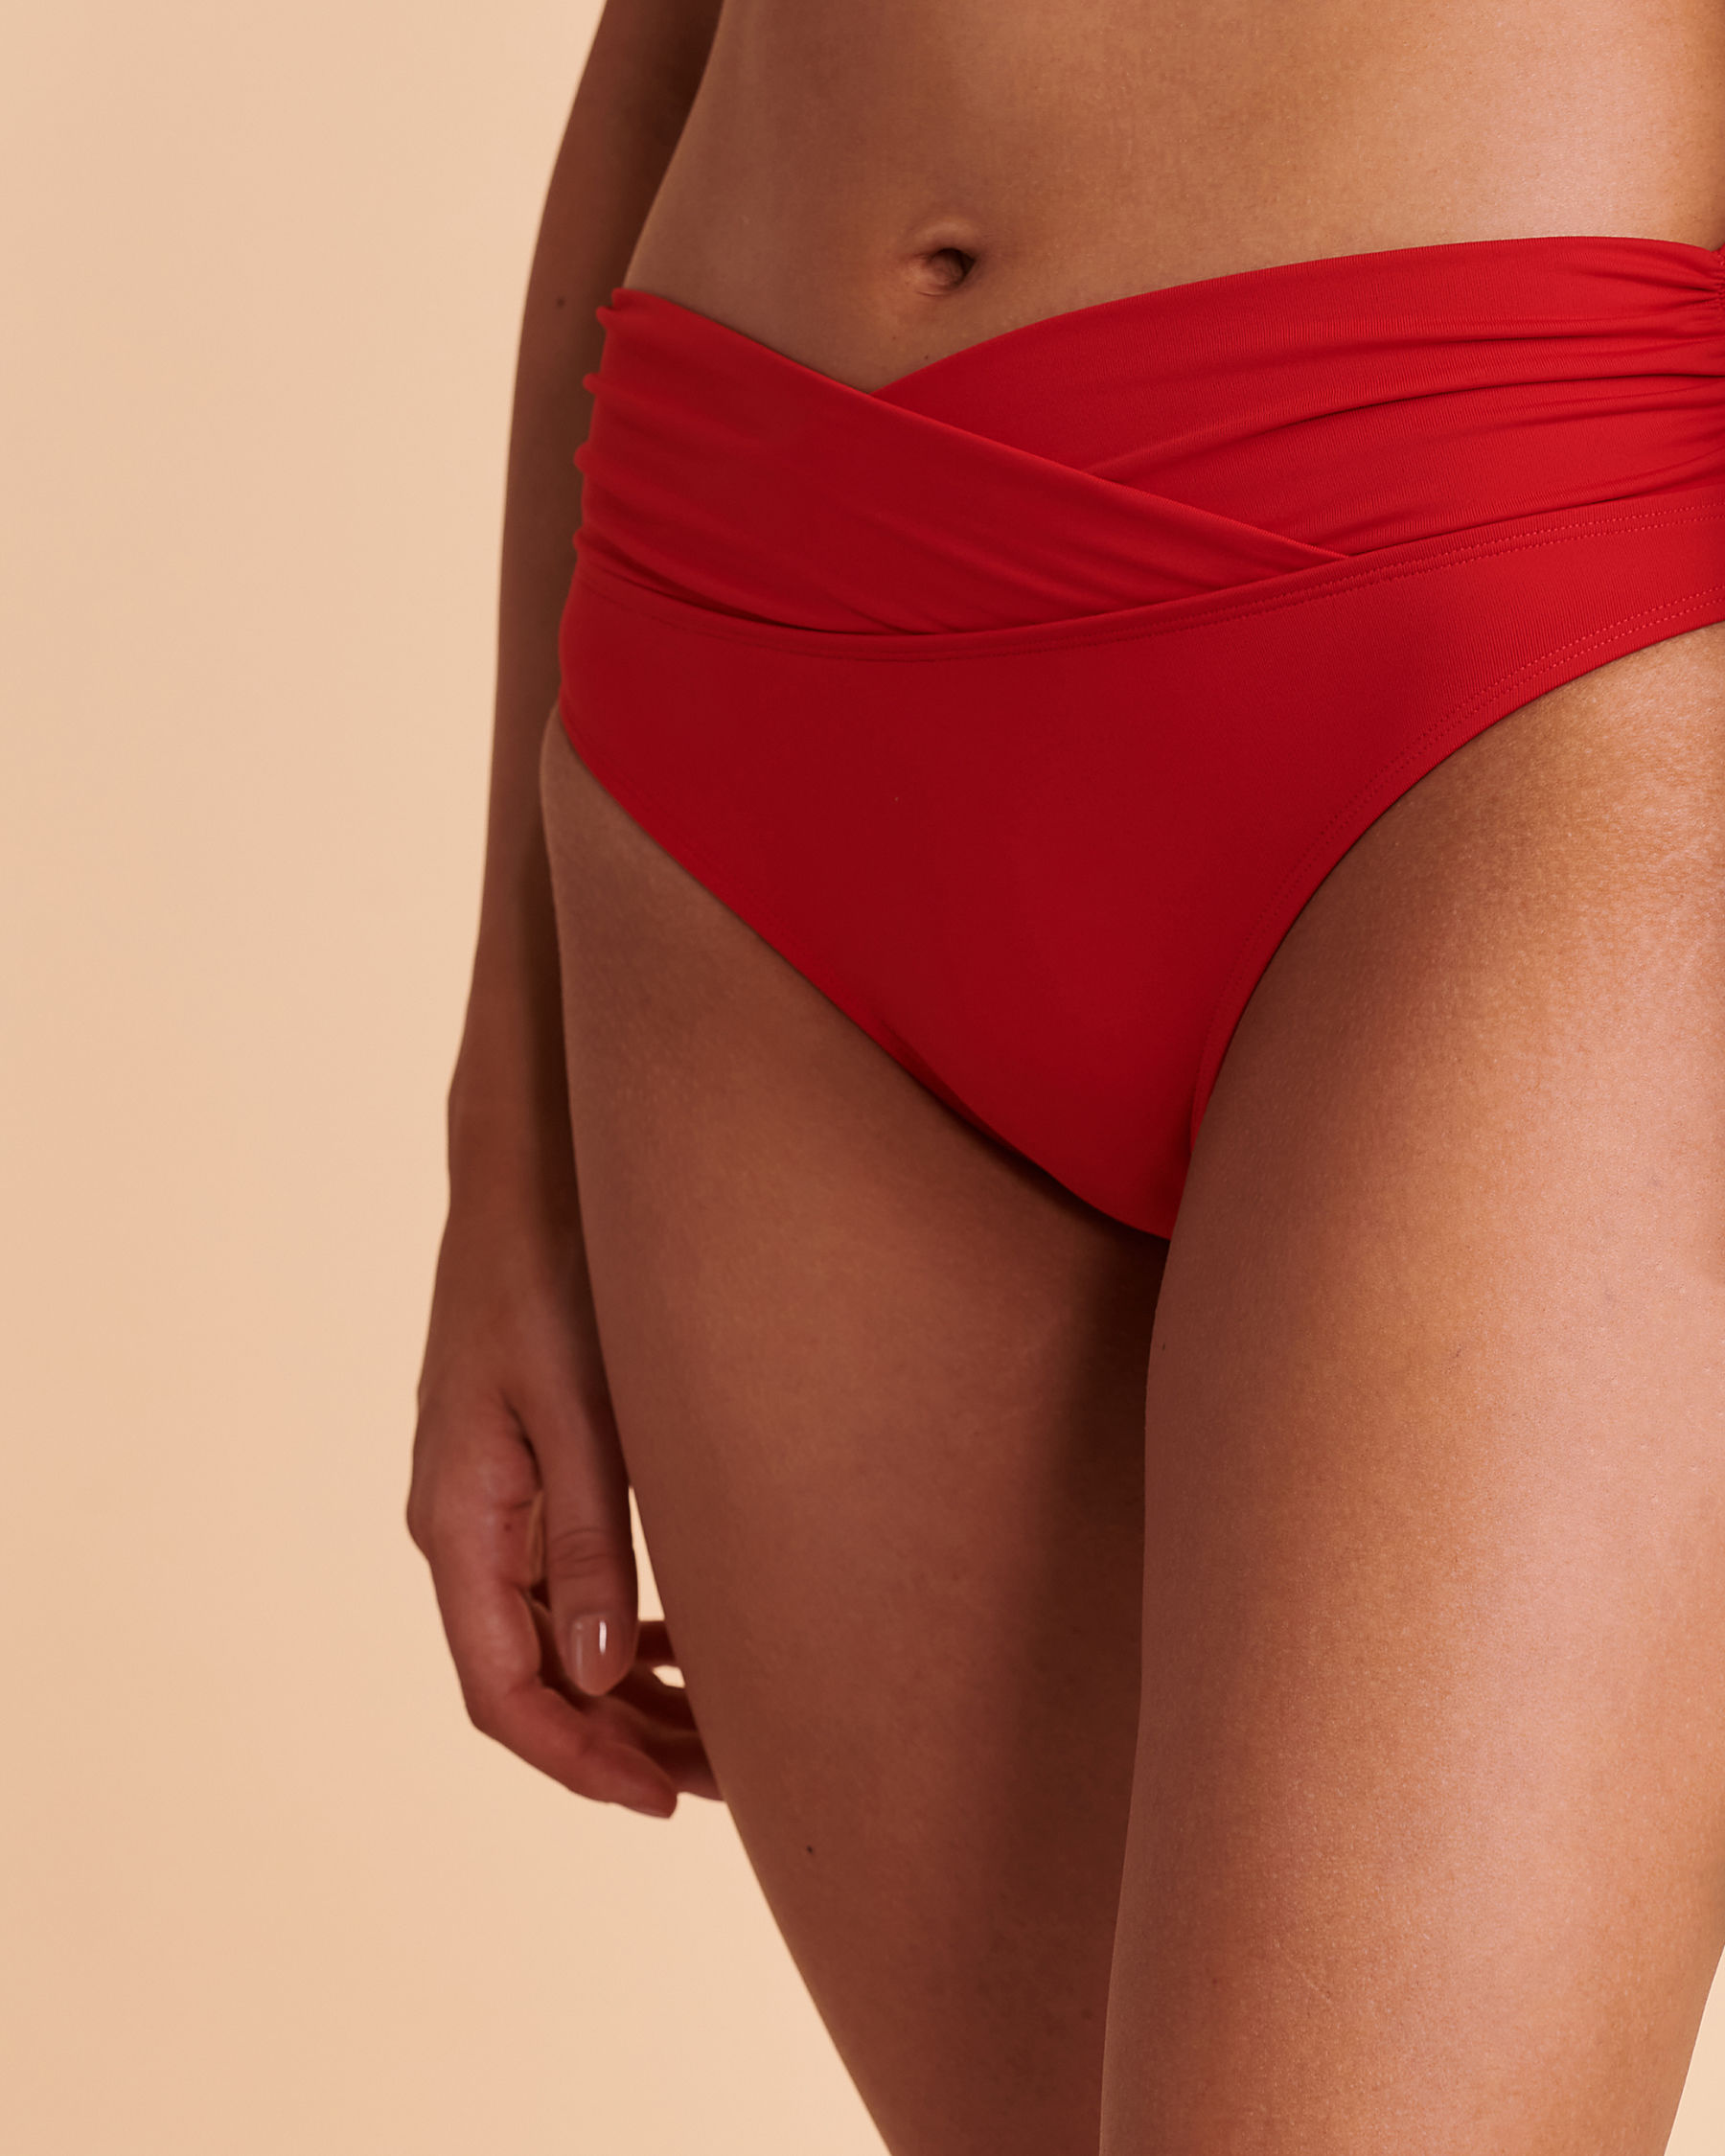 TURQUOISE COUTURE SOLID Foldable Waistband Bikini Bottom Red 01300007 - View1